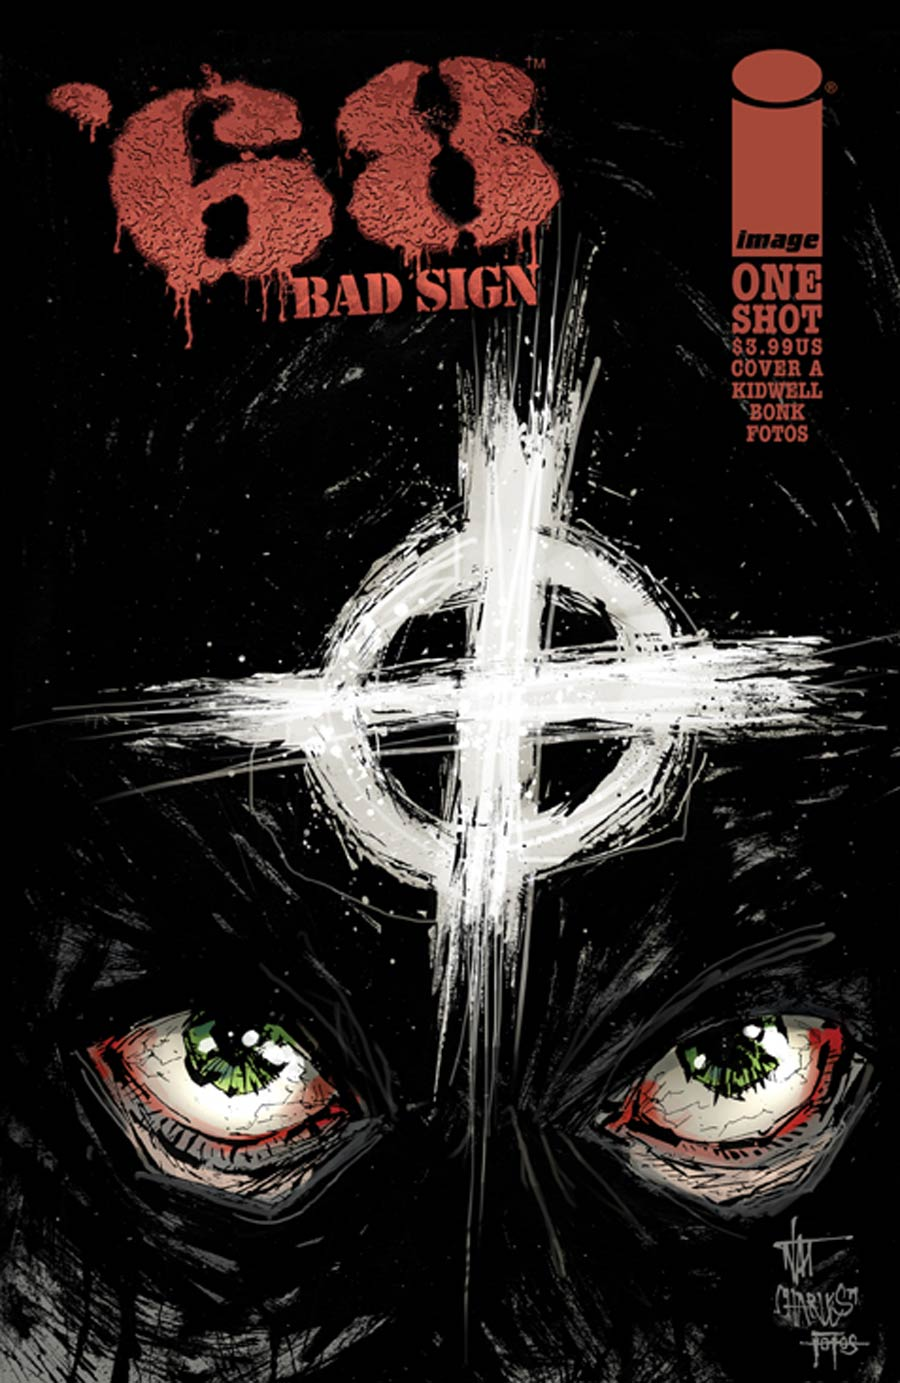 68 Bad Sign One Shot Cover A Nat Jones